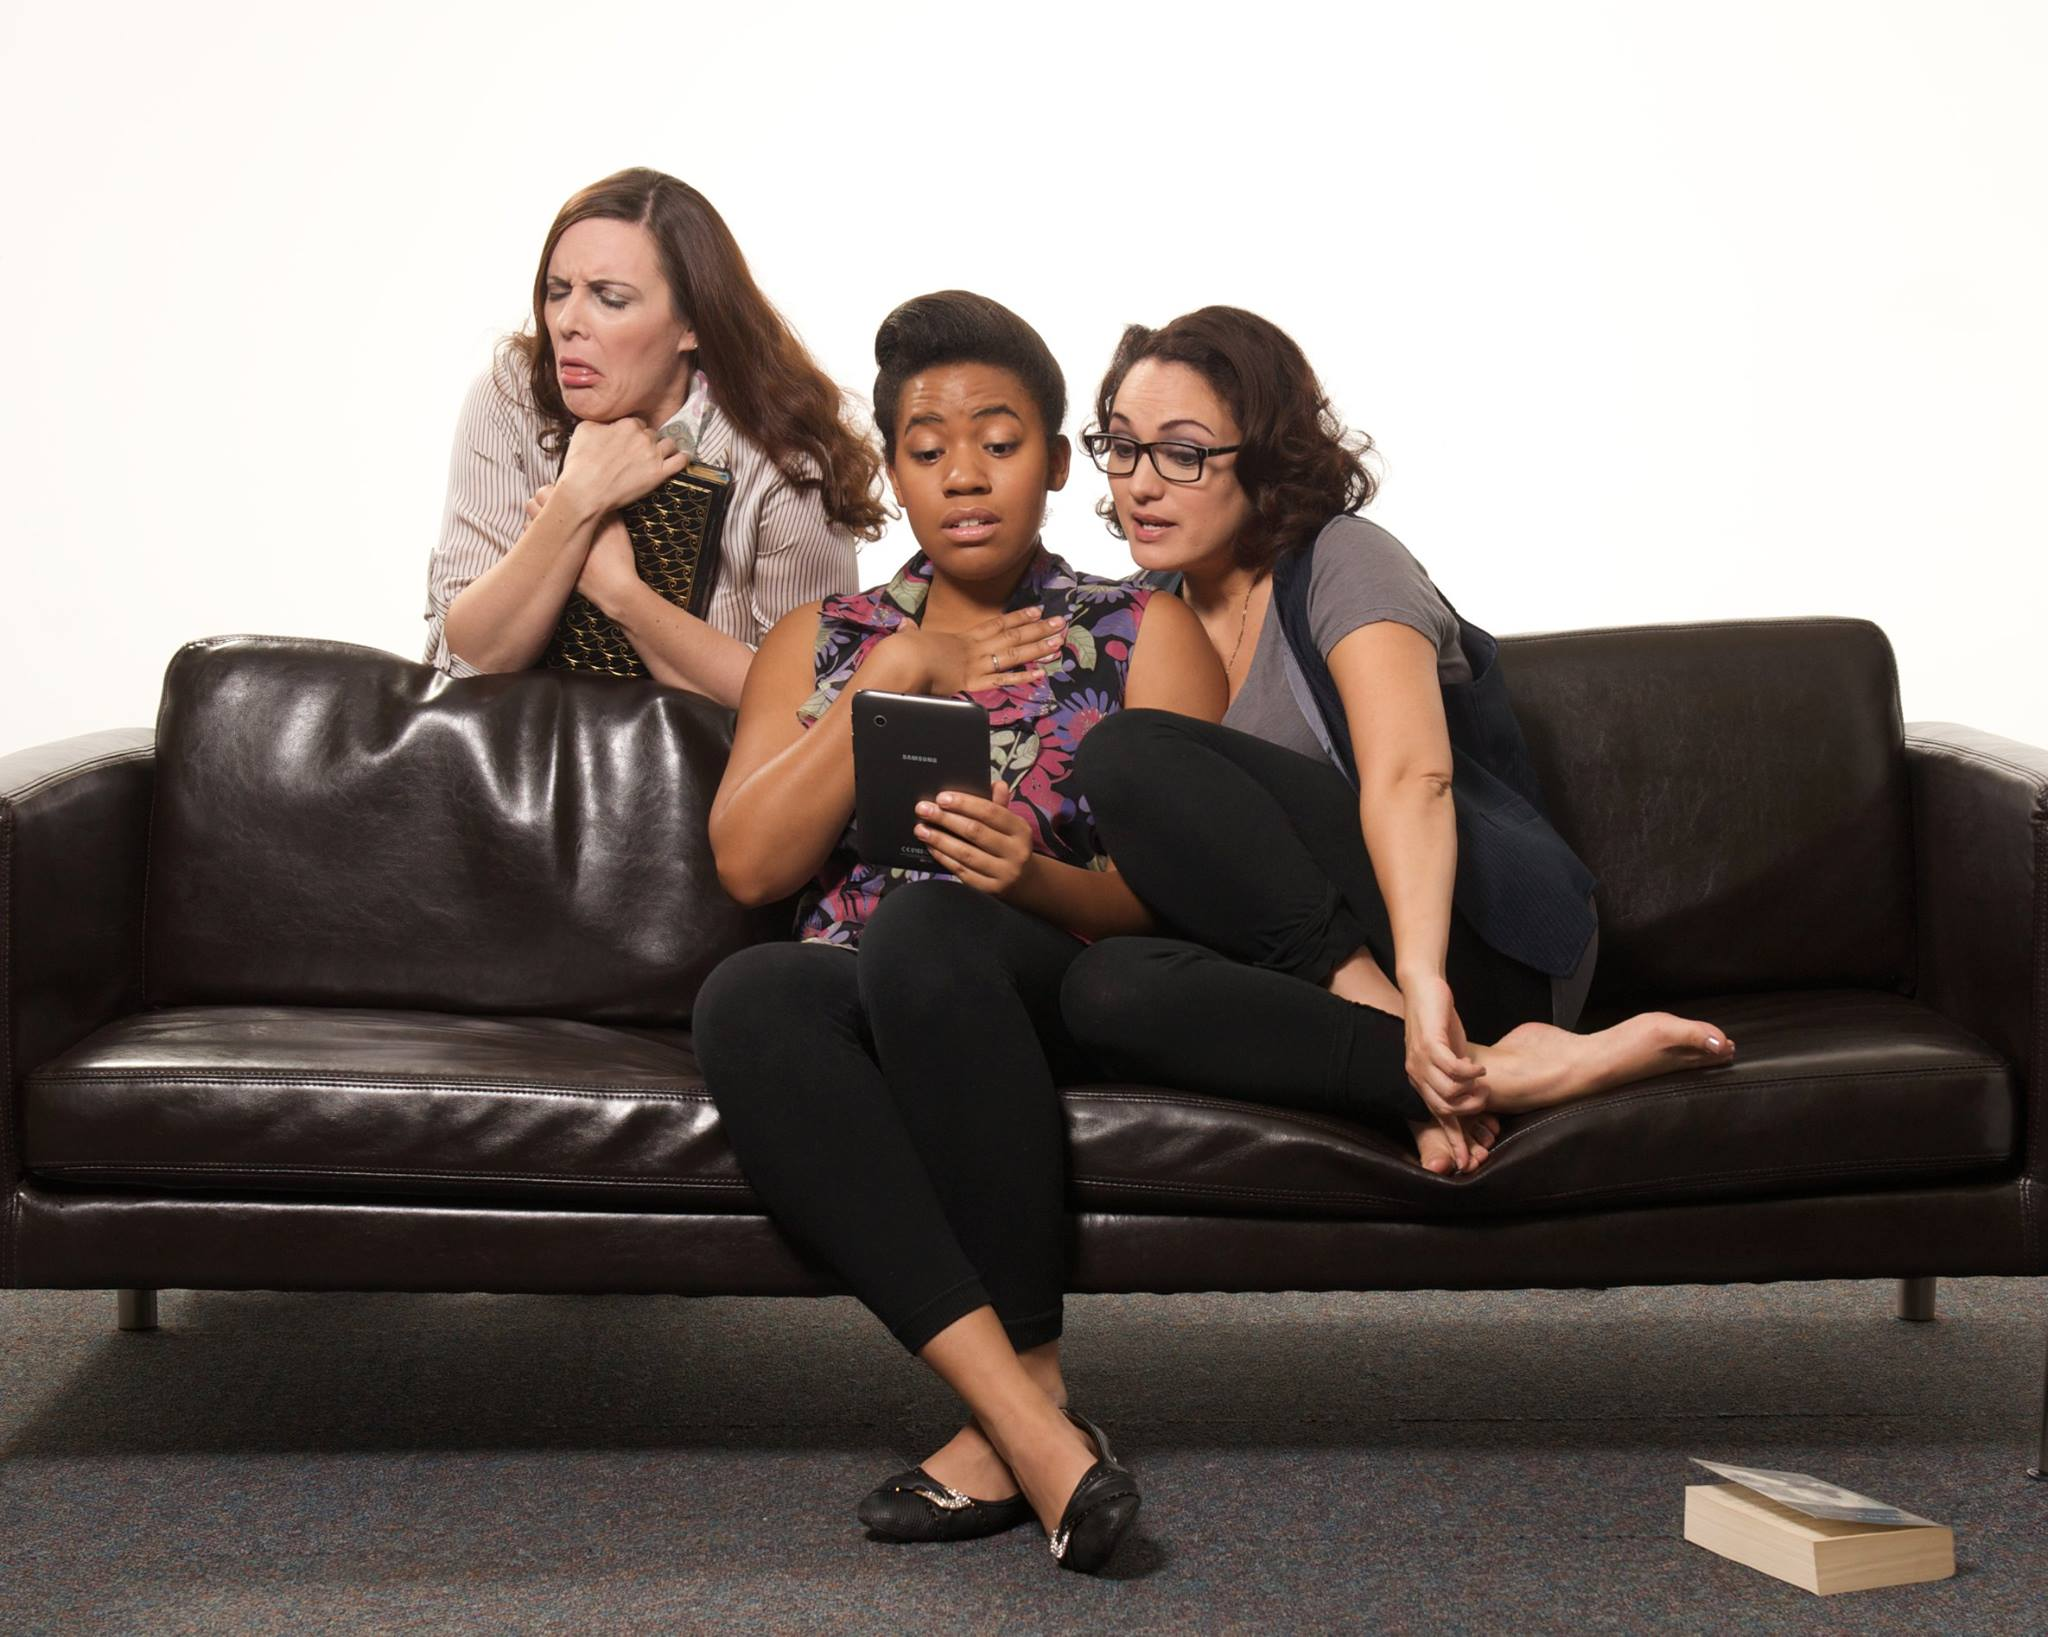 The 2014 Summer Repertory Season at Actors Theatre featured Maren Maclean, Alexis Aisha Green and Angelica Howland. (Photo by John Groseclose)